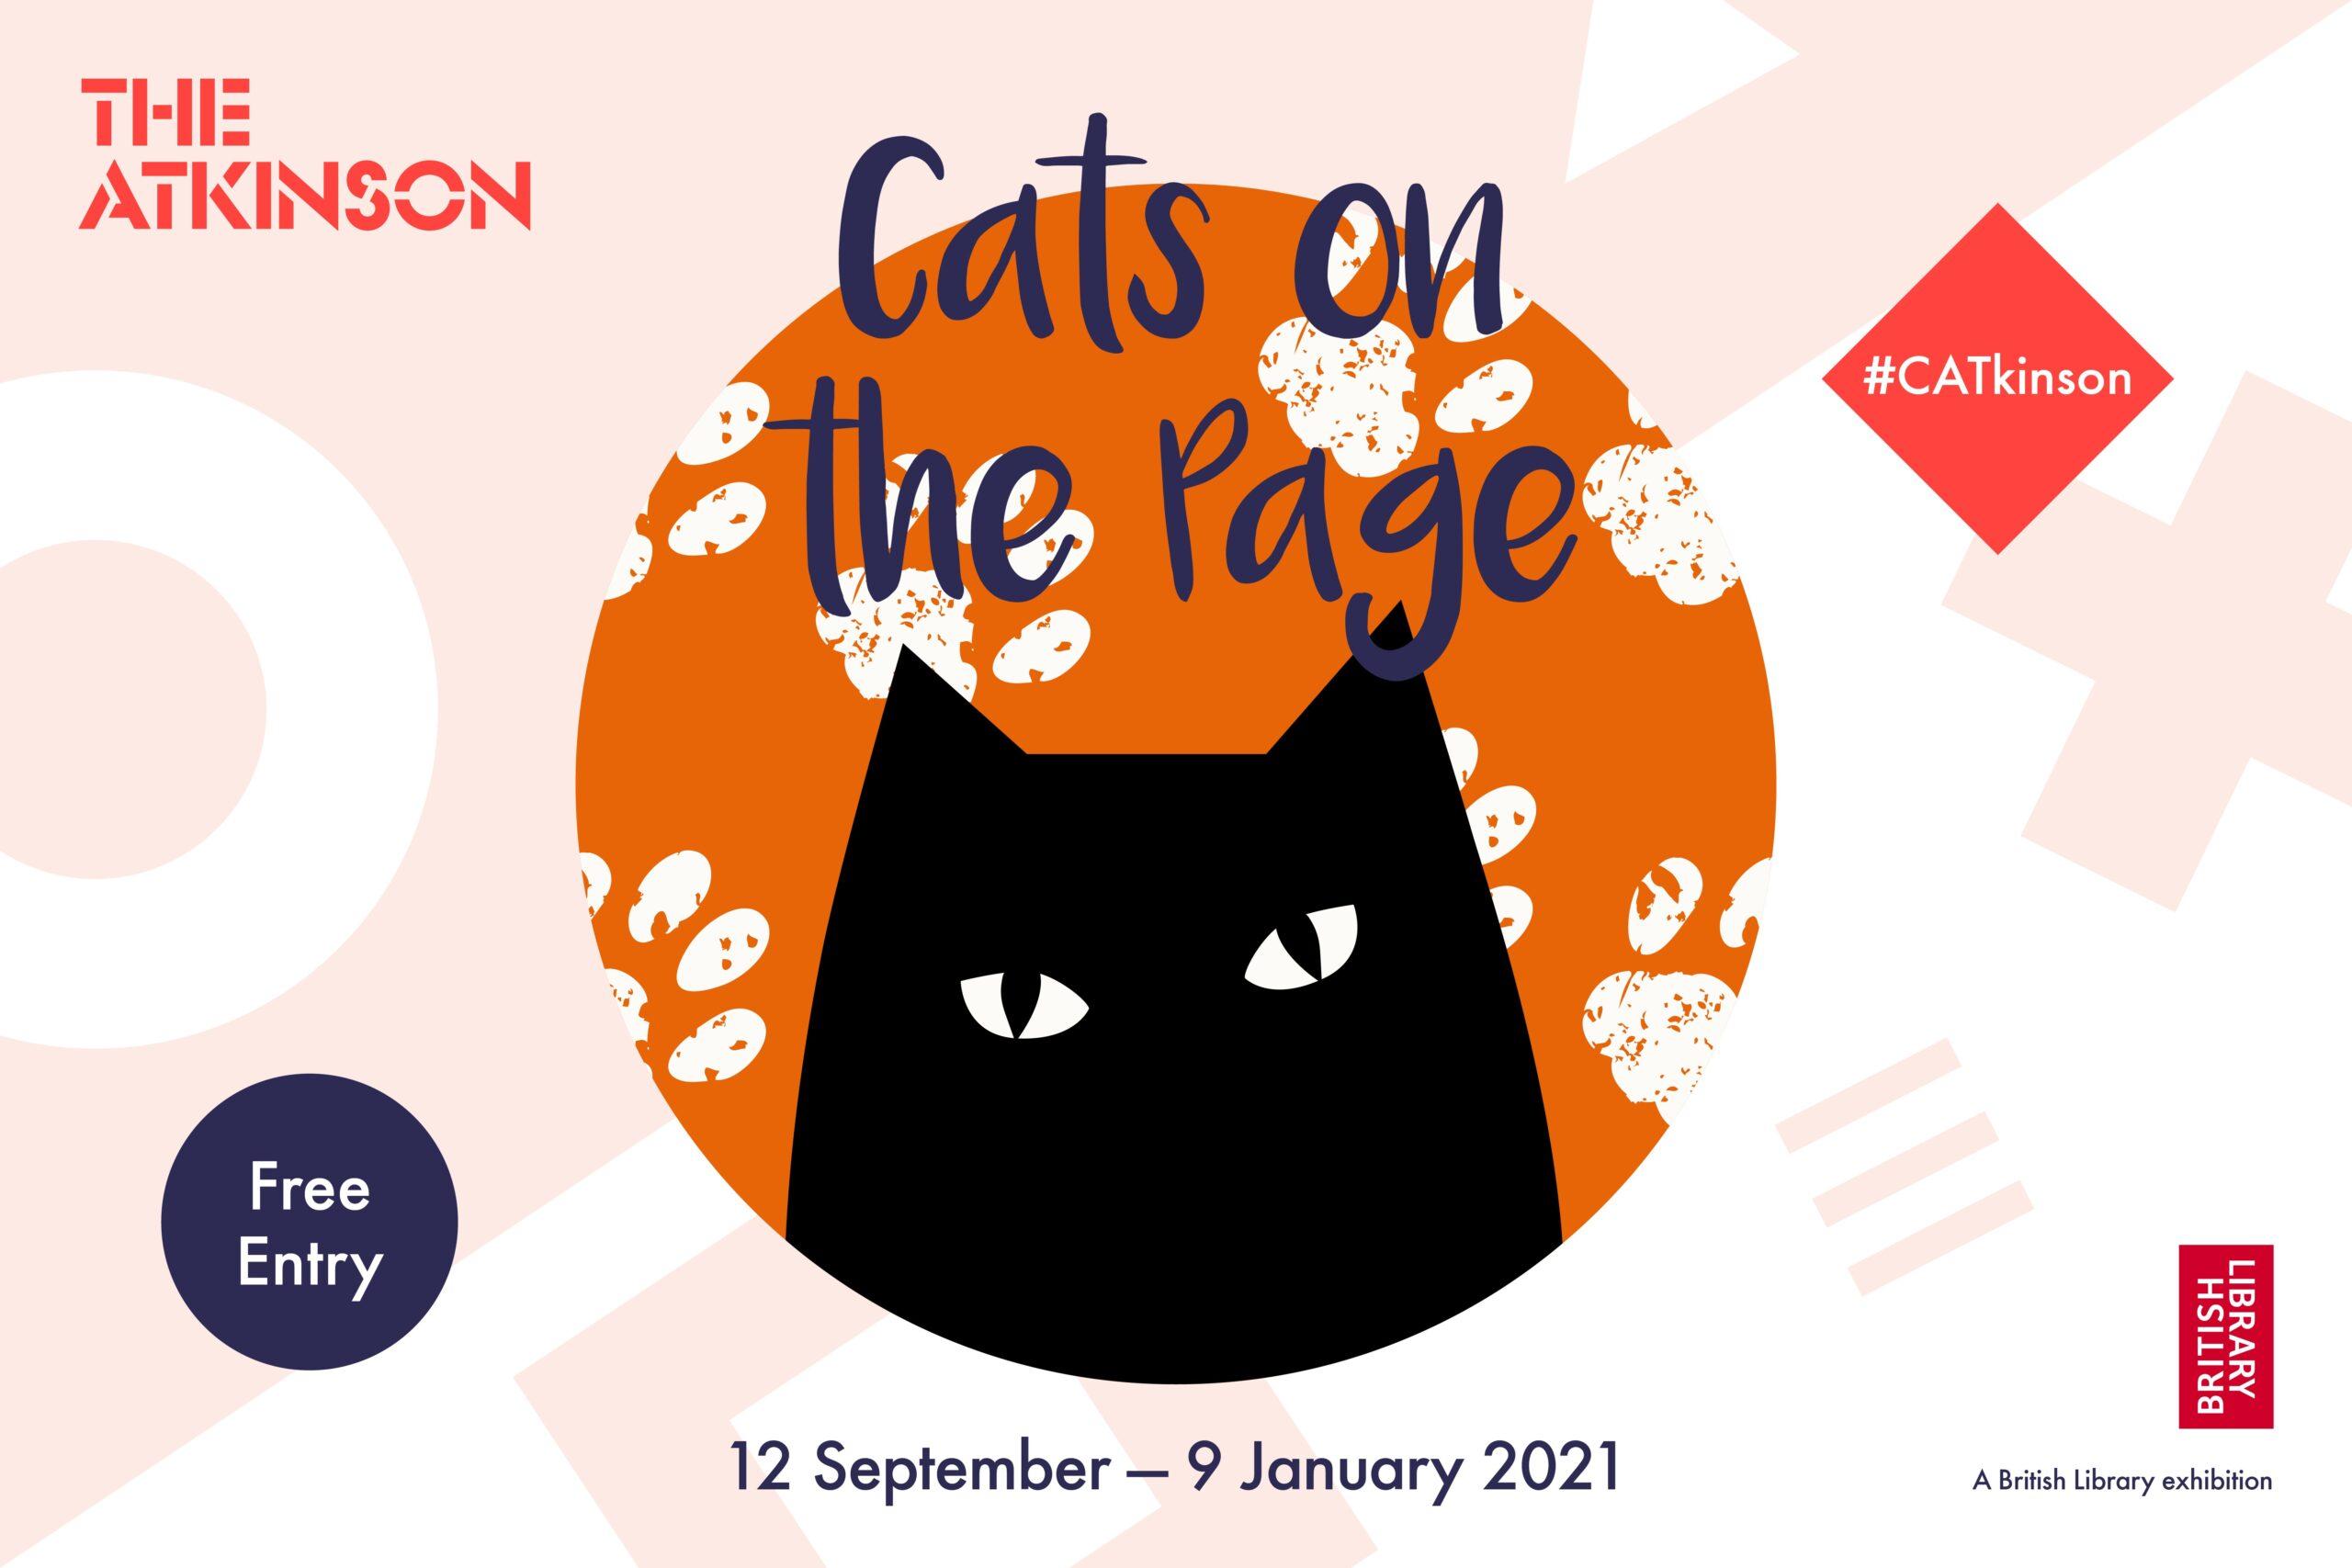 The Atkinson: Cats on the Page